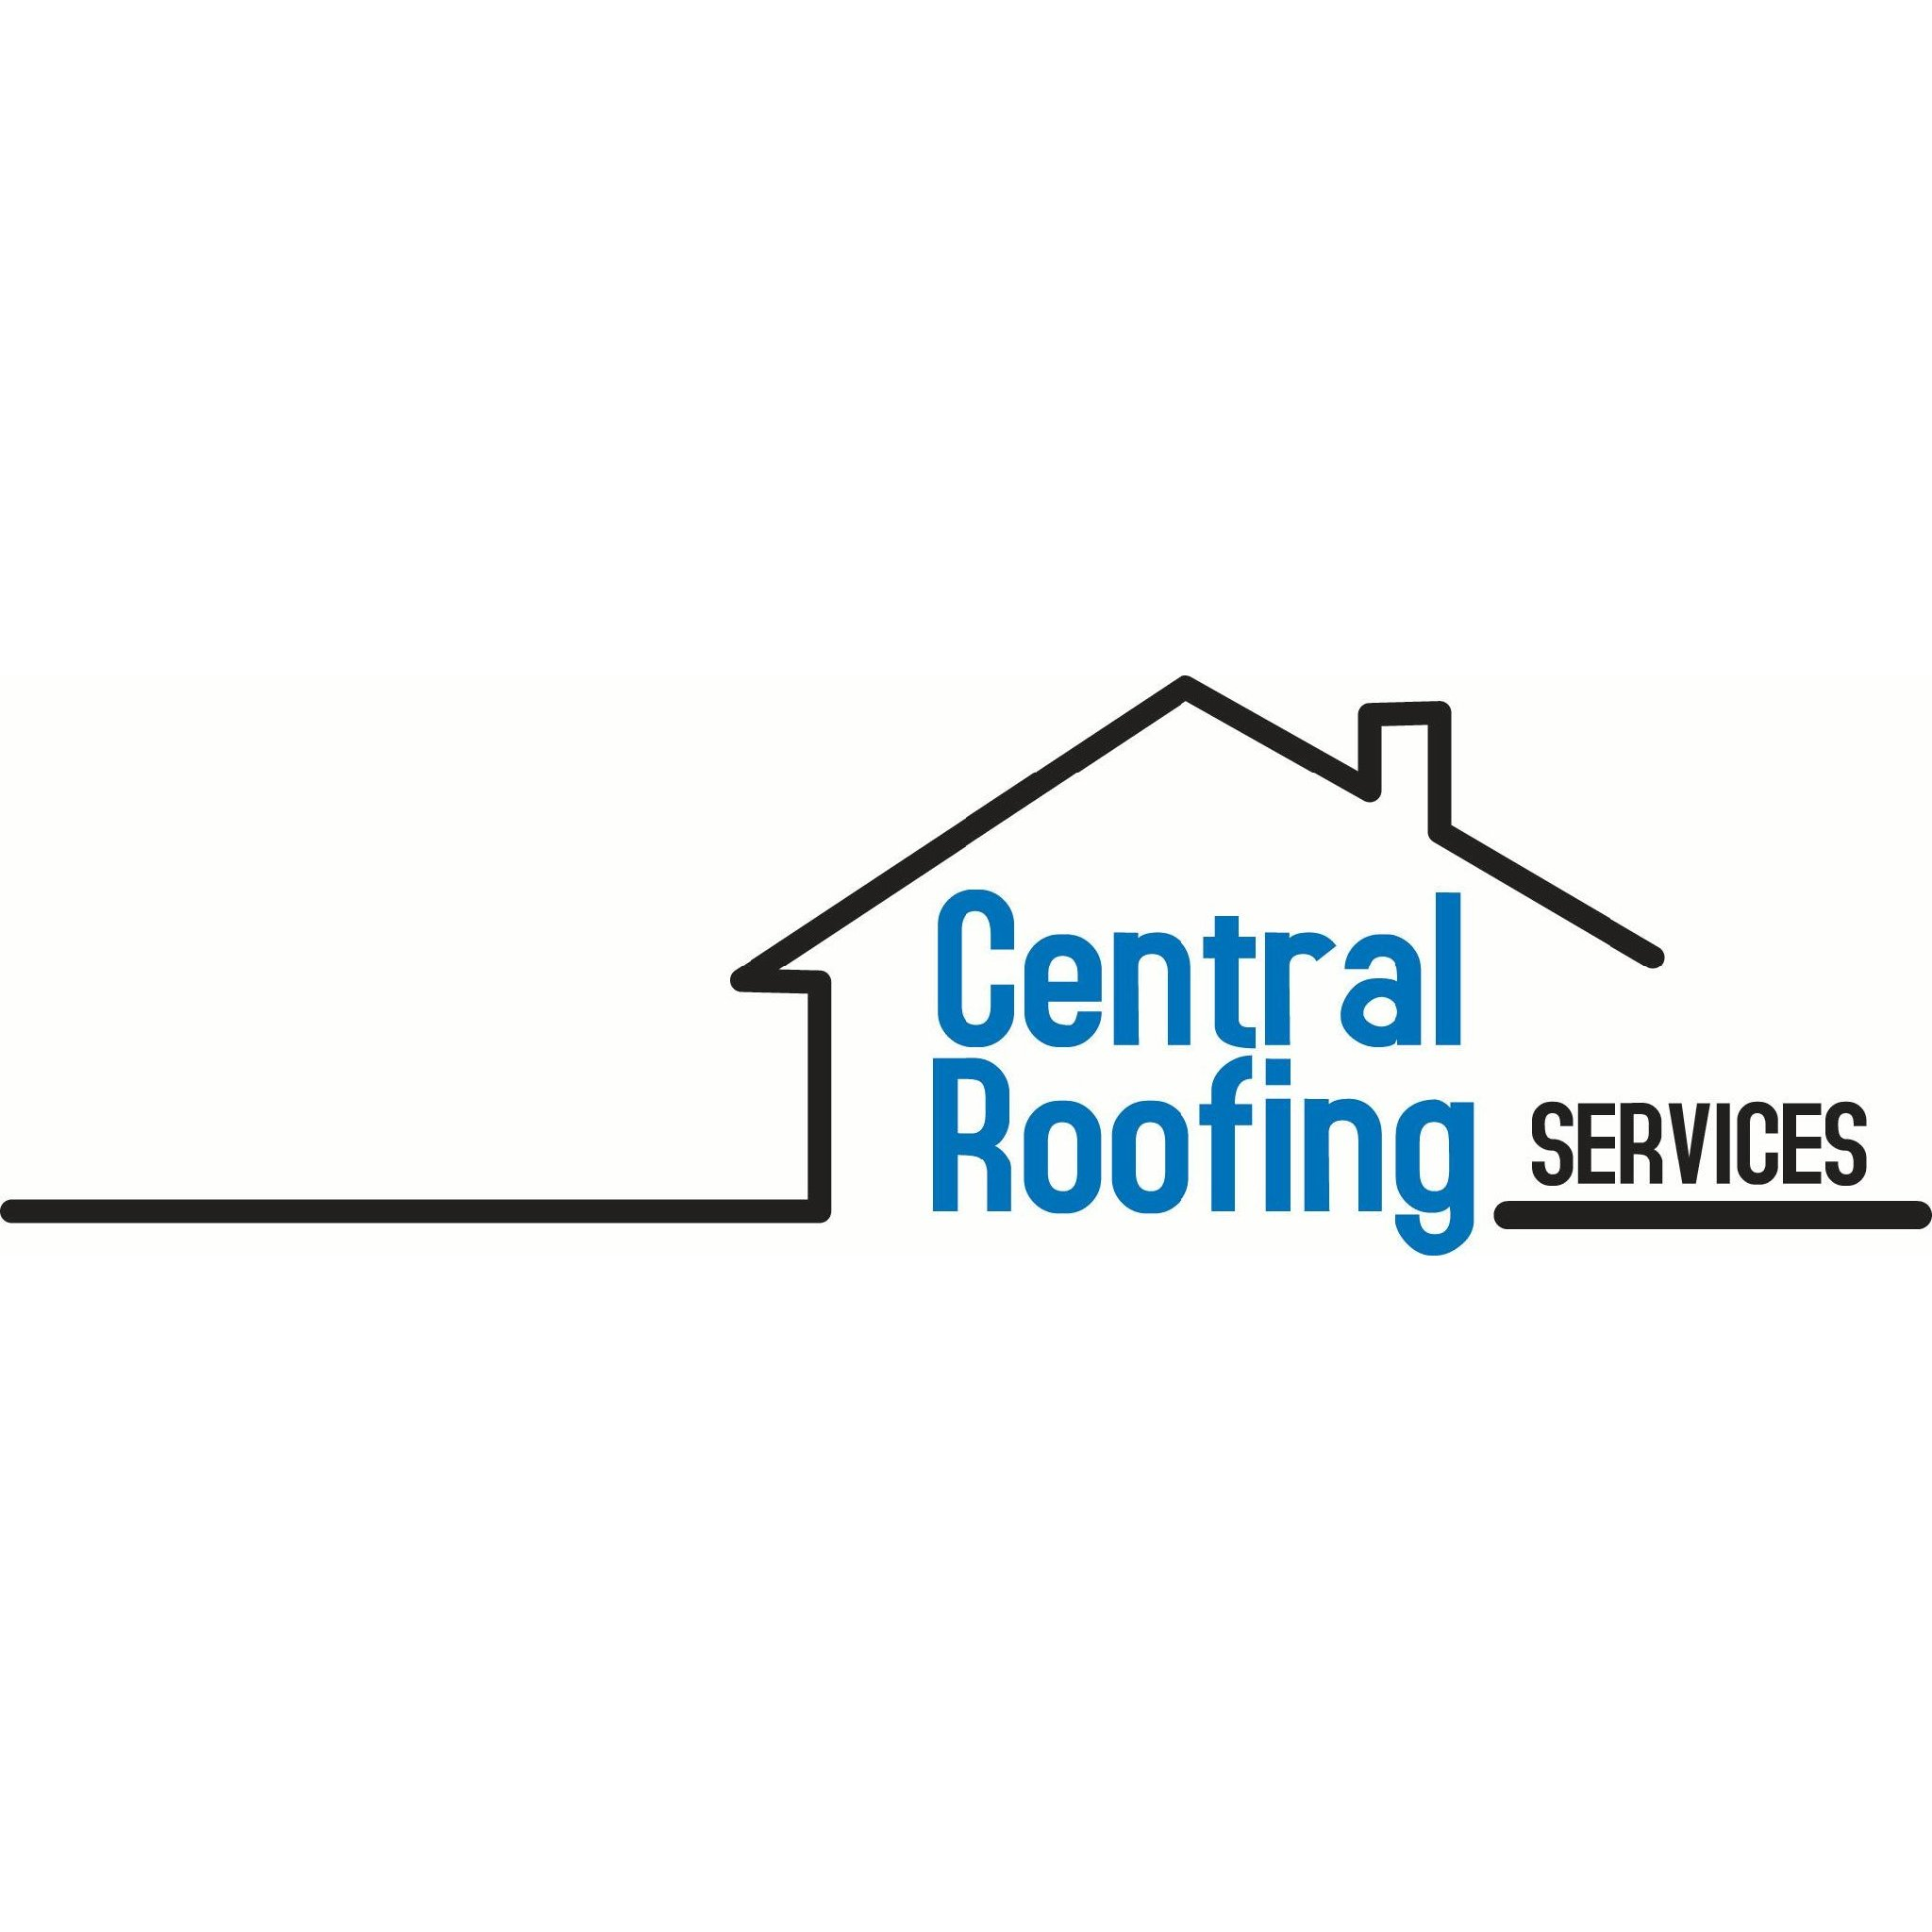 Central Roofing Services Roofing Contracting Services In